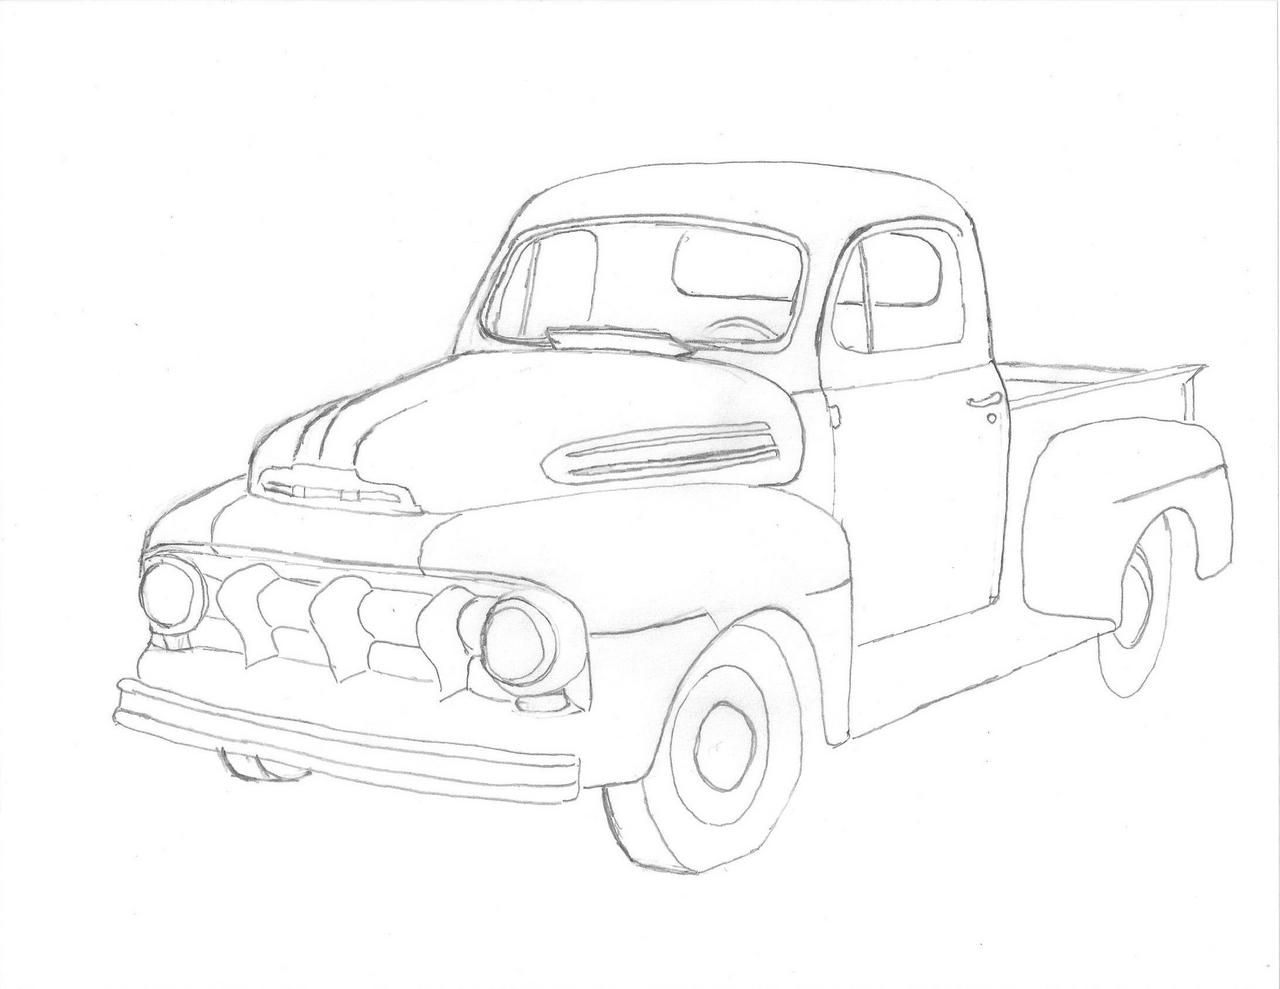 a drawing of a 49 f1 ford truck enthusiasts forums creative Brown Chevy Truck a drawing of a 49 f1 ford truck enthusiasts forums